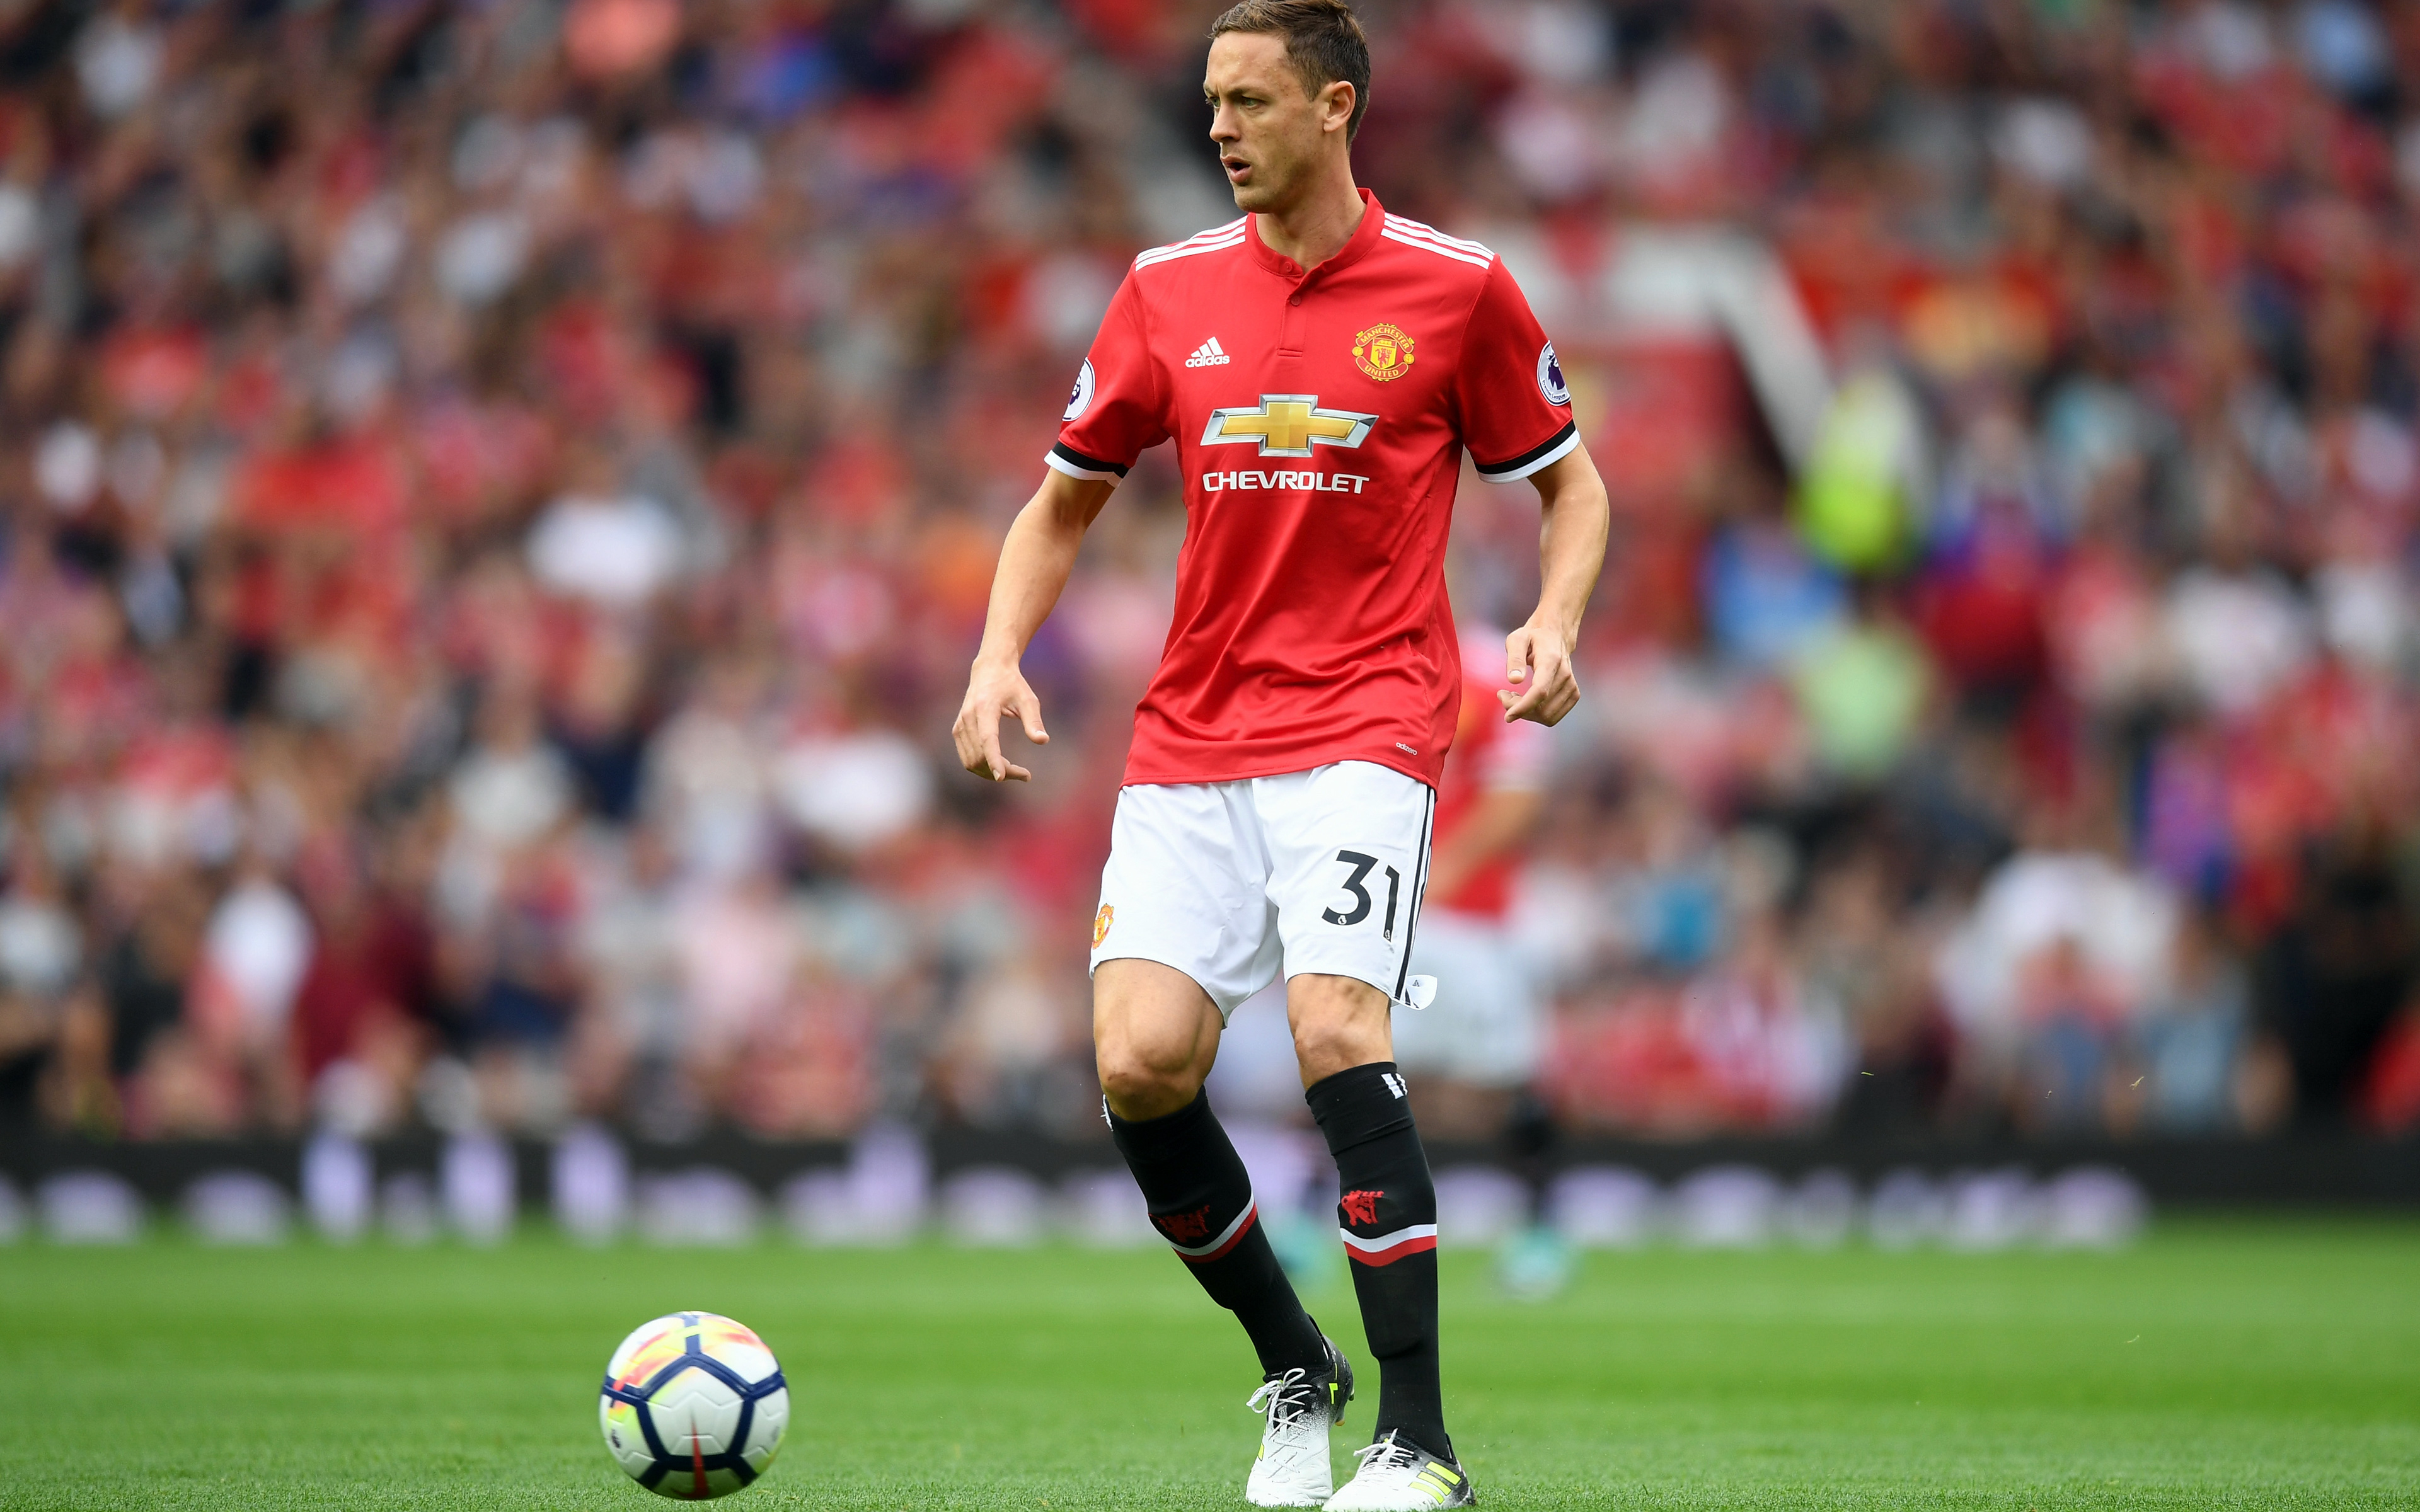 1280x2120 nemanja matic manchester united football player iphone 6 plus wallpaper hd sports 4k wallpapers images photos and background 1280x2120 nemanja matic manchester